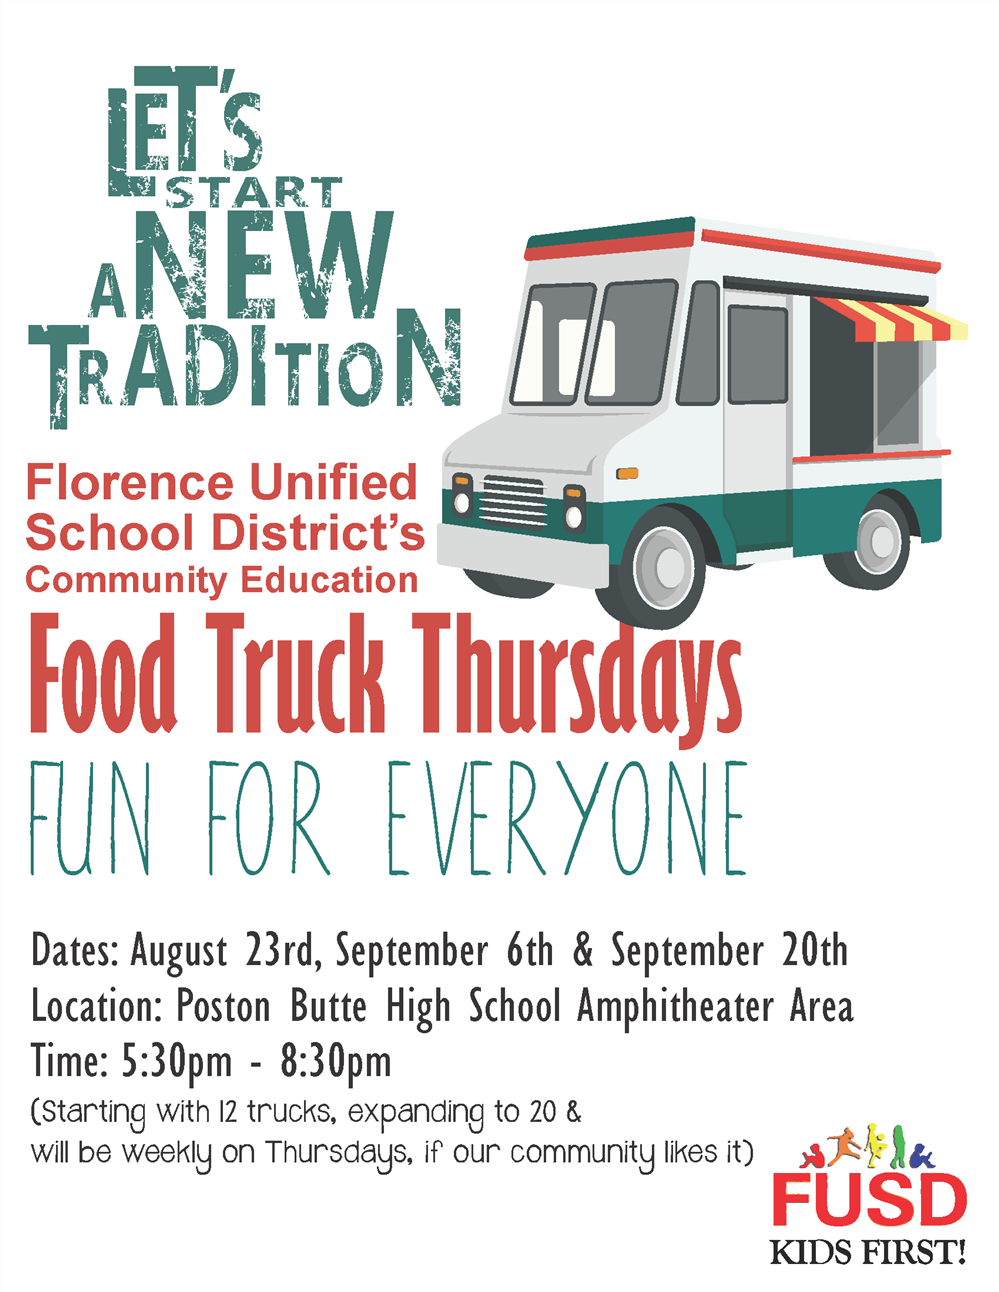 FUSD Food Truck Thursdays will happen August 23rd, Sept. 6&20th,  at Poston Butte from 5:30-8:30pm